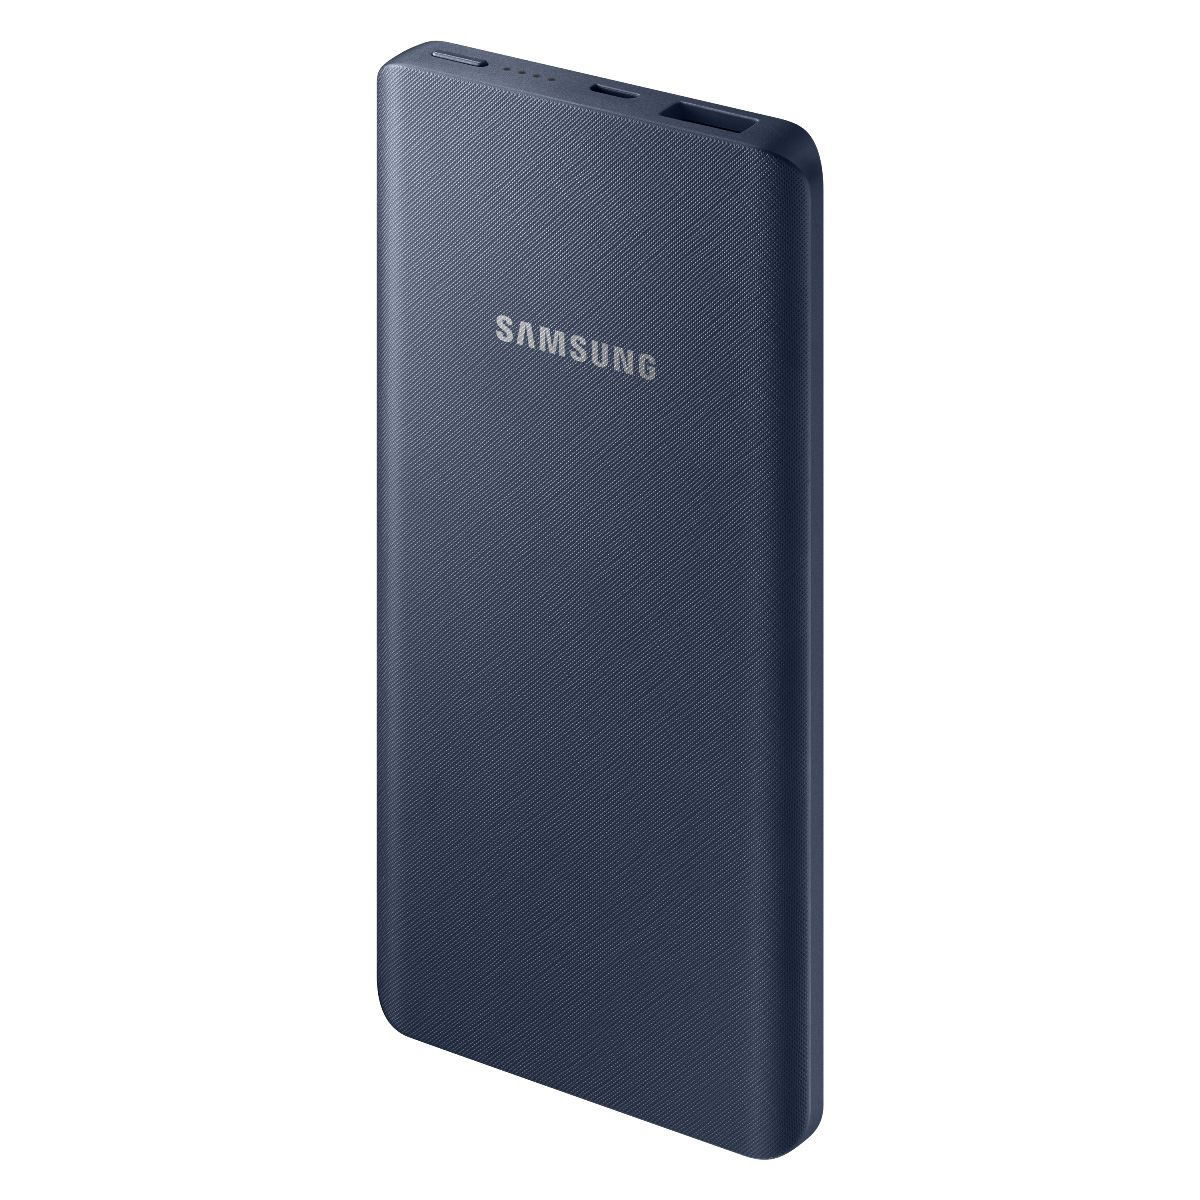 Battery pack 5000mah azul marino  - Sanborns